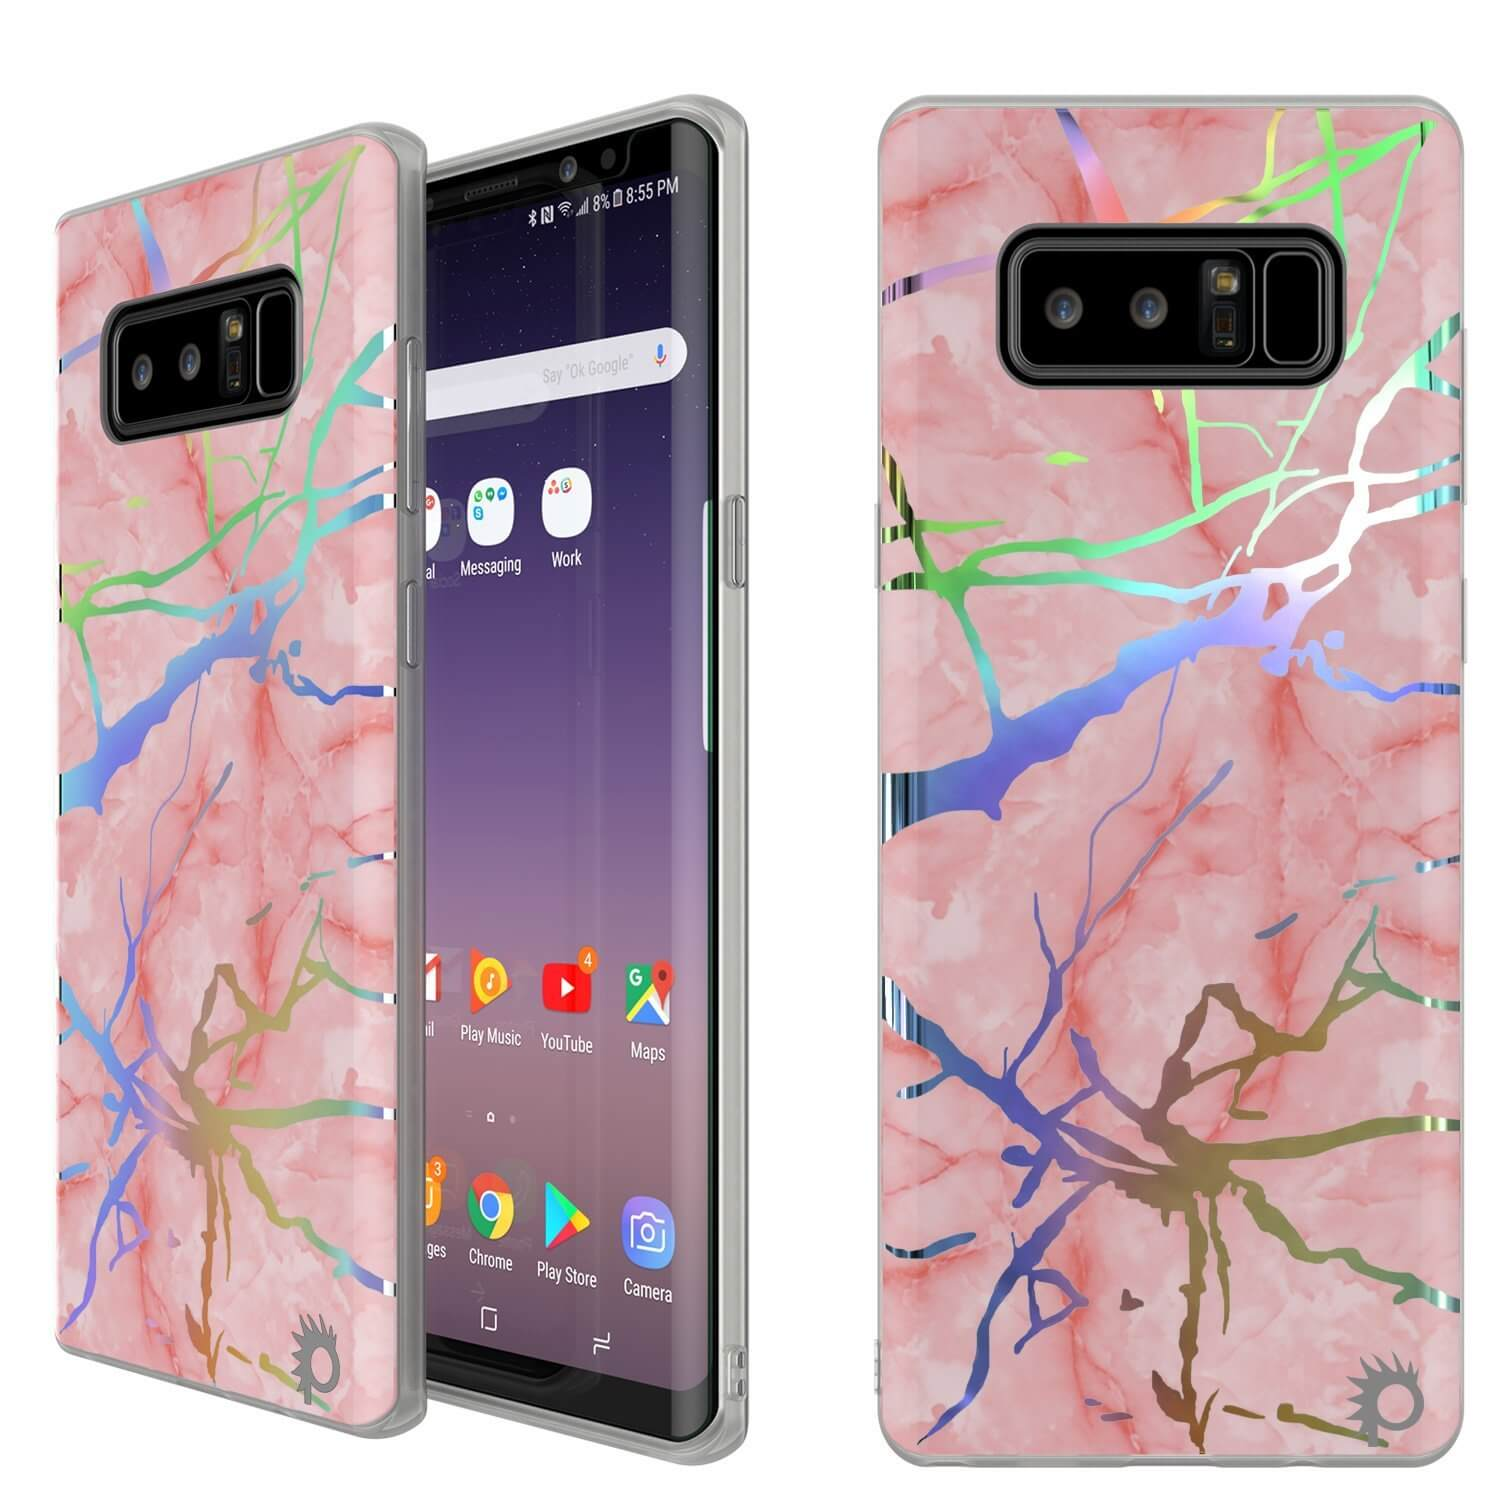 Galaxy Note 8 Full Body W/ Screen Protector Marble Case (Rose Mirage)